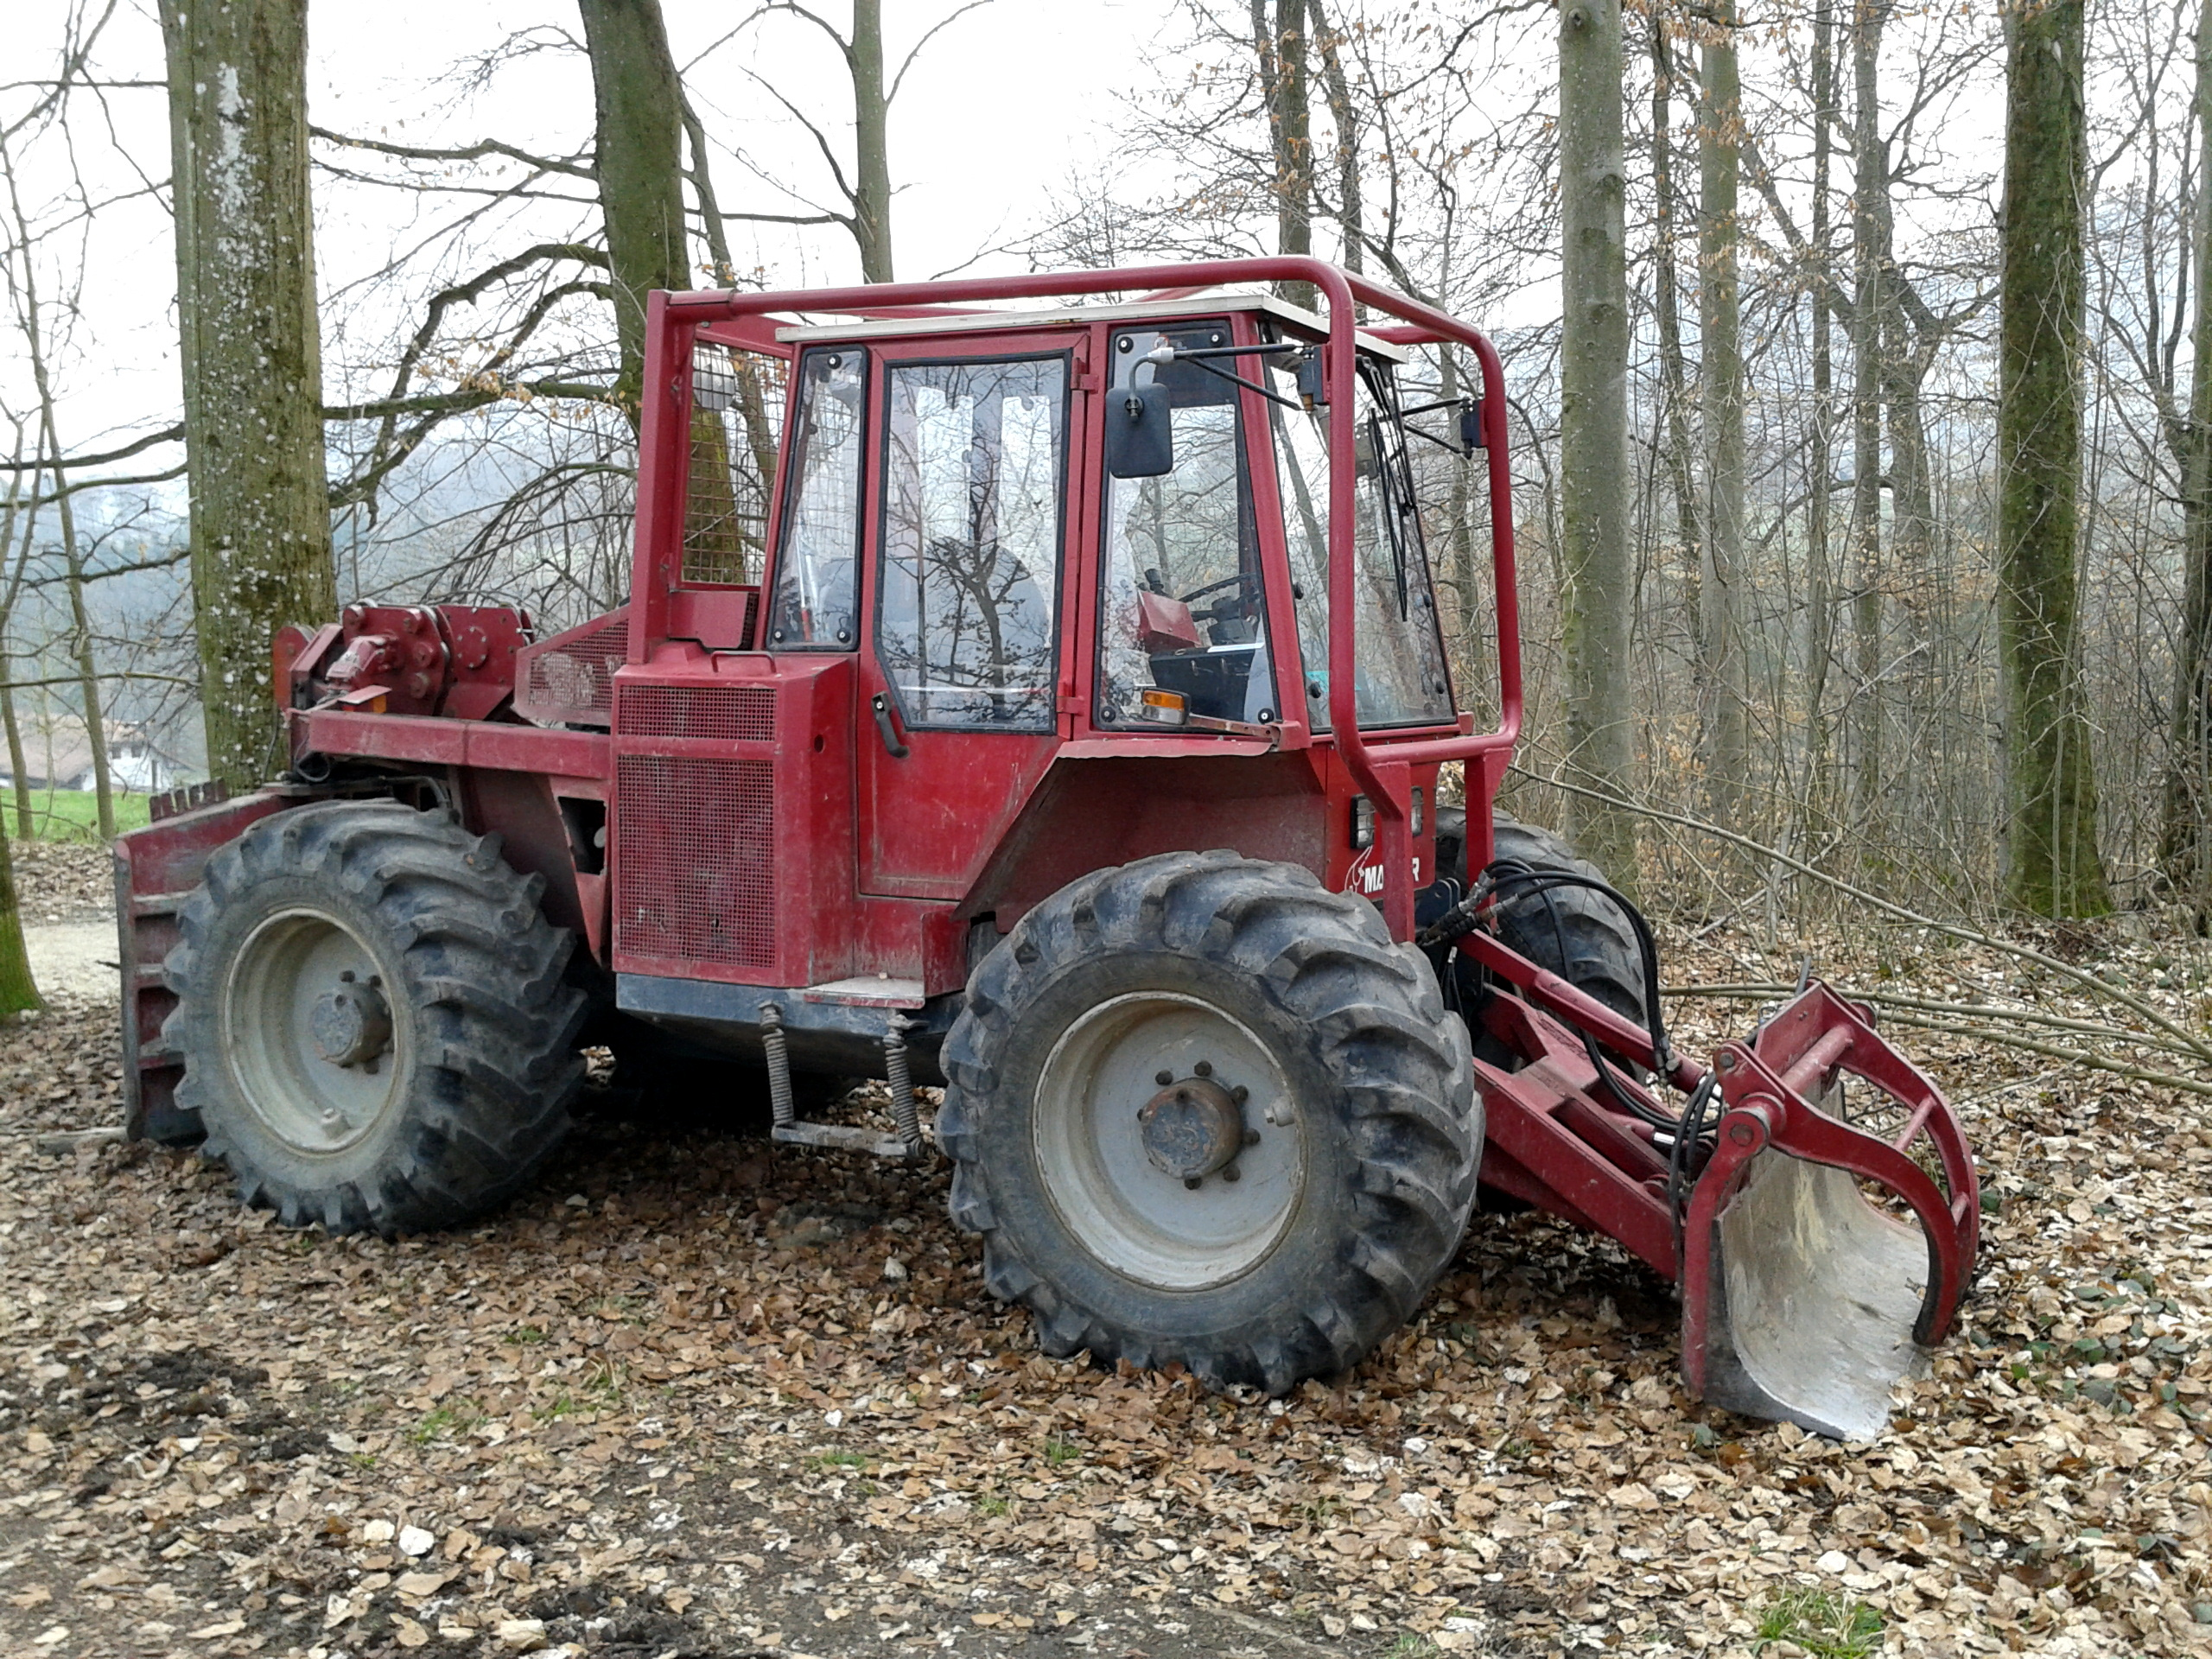 Tractor Forestry Package : File forestry tractor g wikimedia